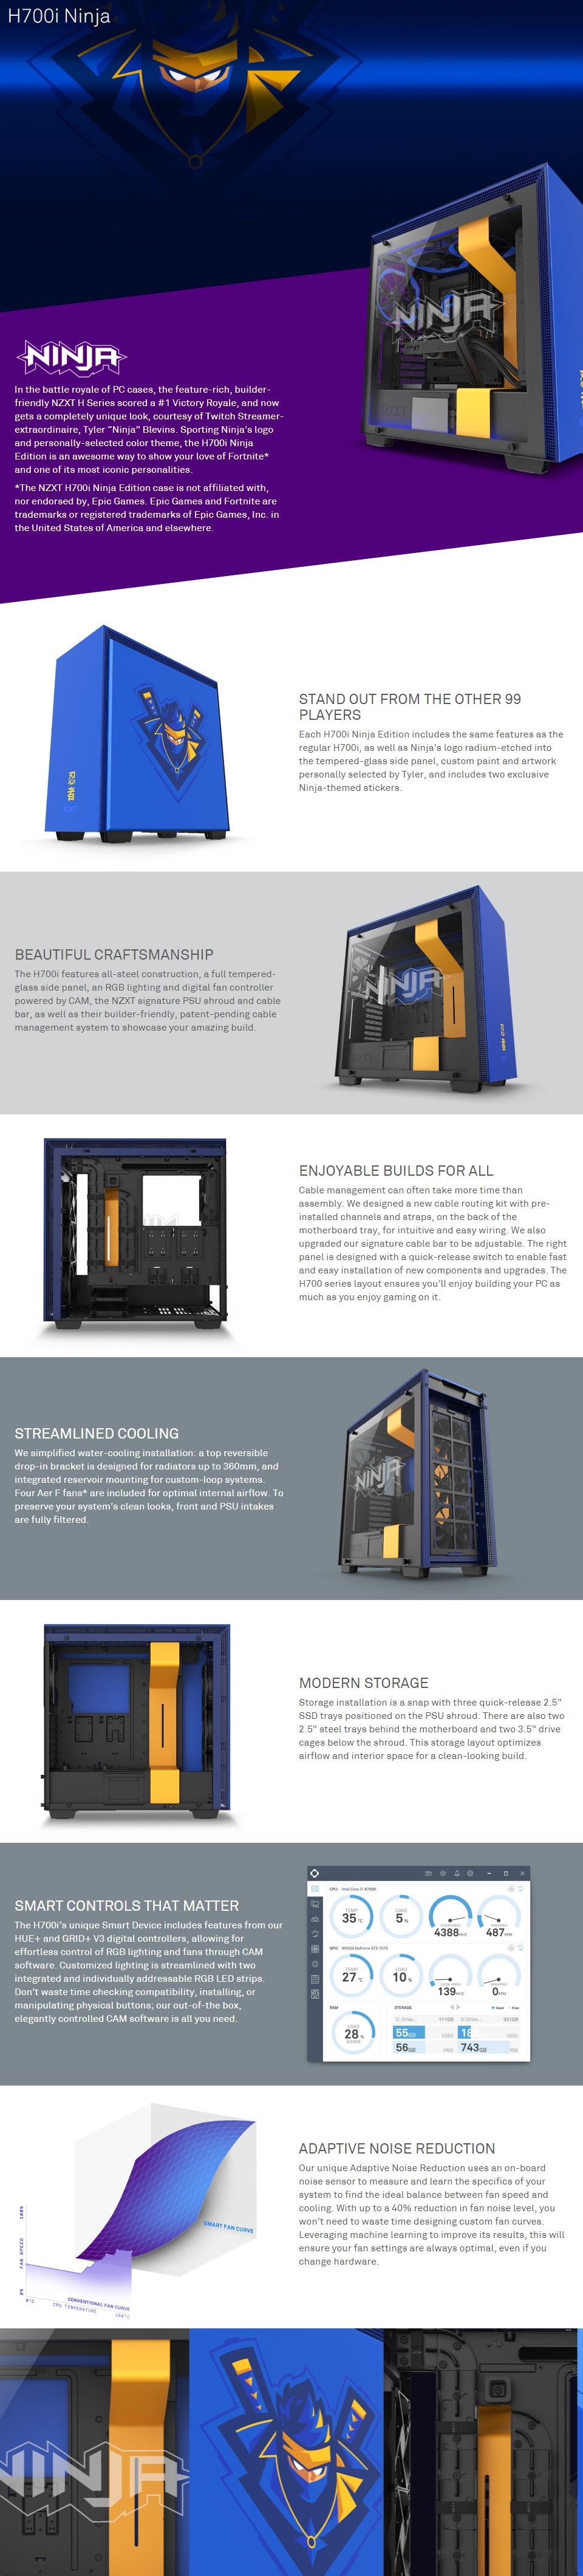 A large marketing image providing additional information about the product NZXT H700i Ninja Special Edition Mid Tower Case  - Additional alt info not provided